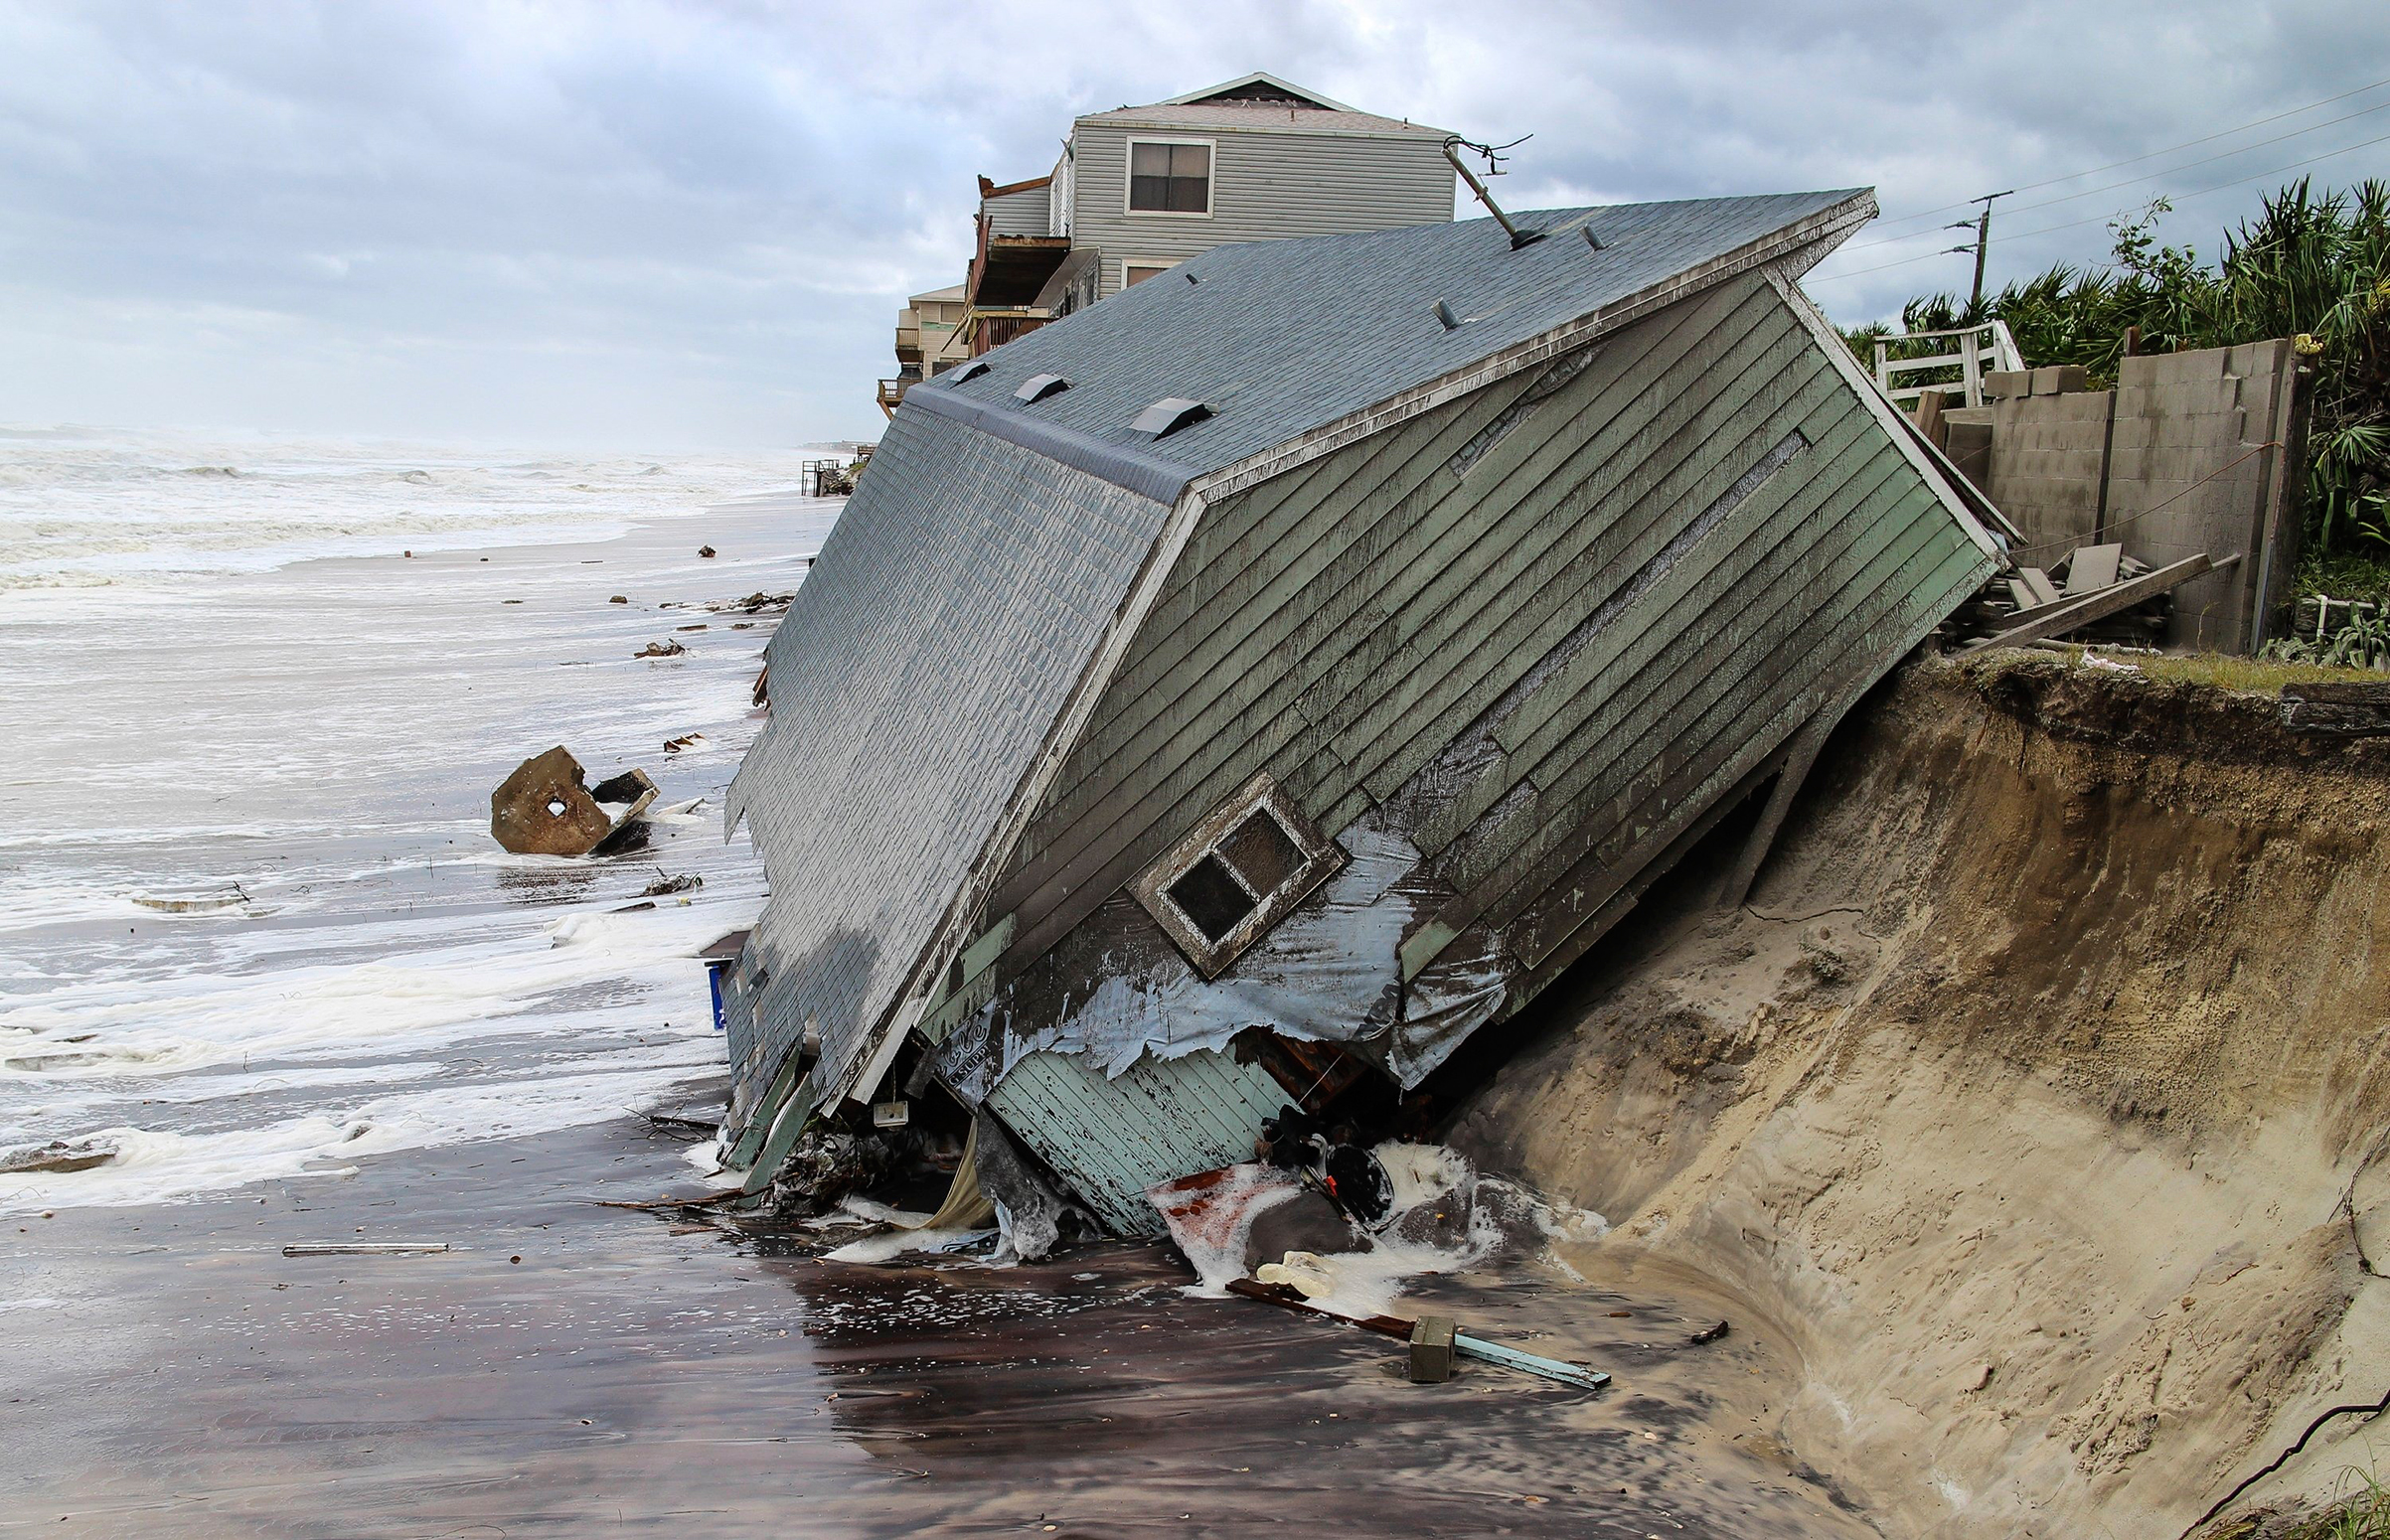 A house slides into the ocean on the Atlantic Coast—one more home built too close to danger